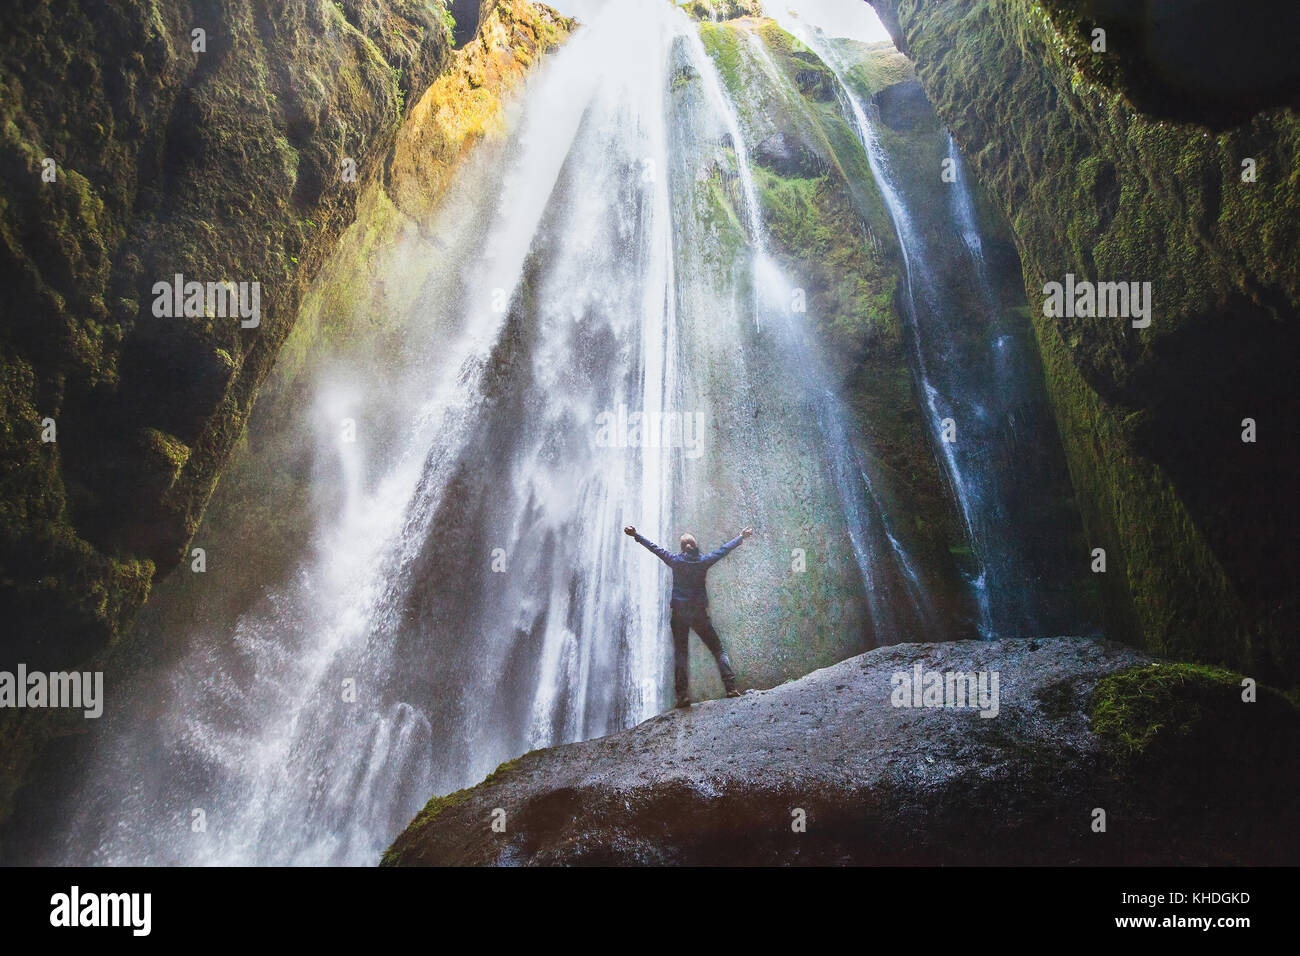 travel to Iceland, person with raised hands standing in waterfall Gljufrabui, inspired happy traveler enjoying nature, - Stock Image